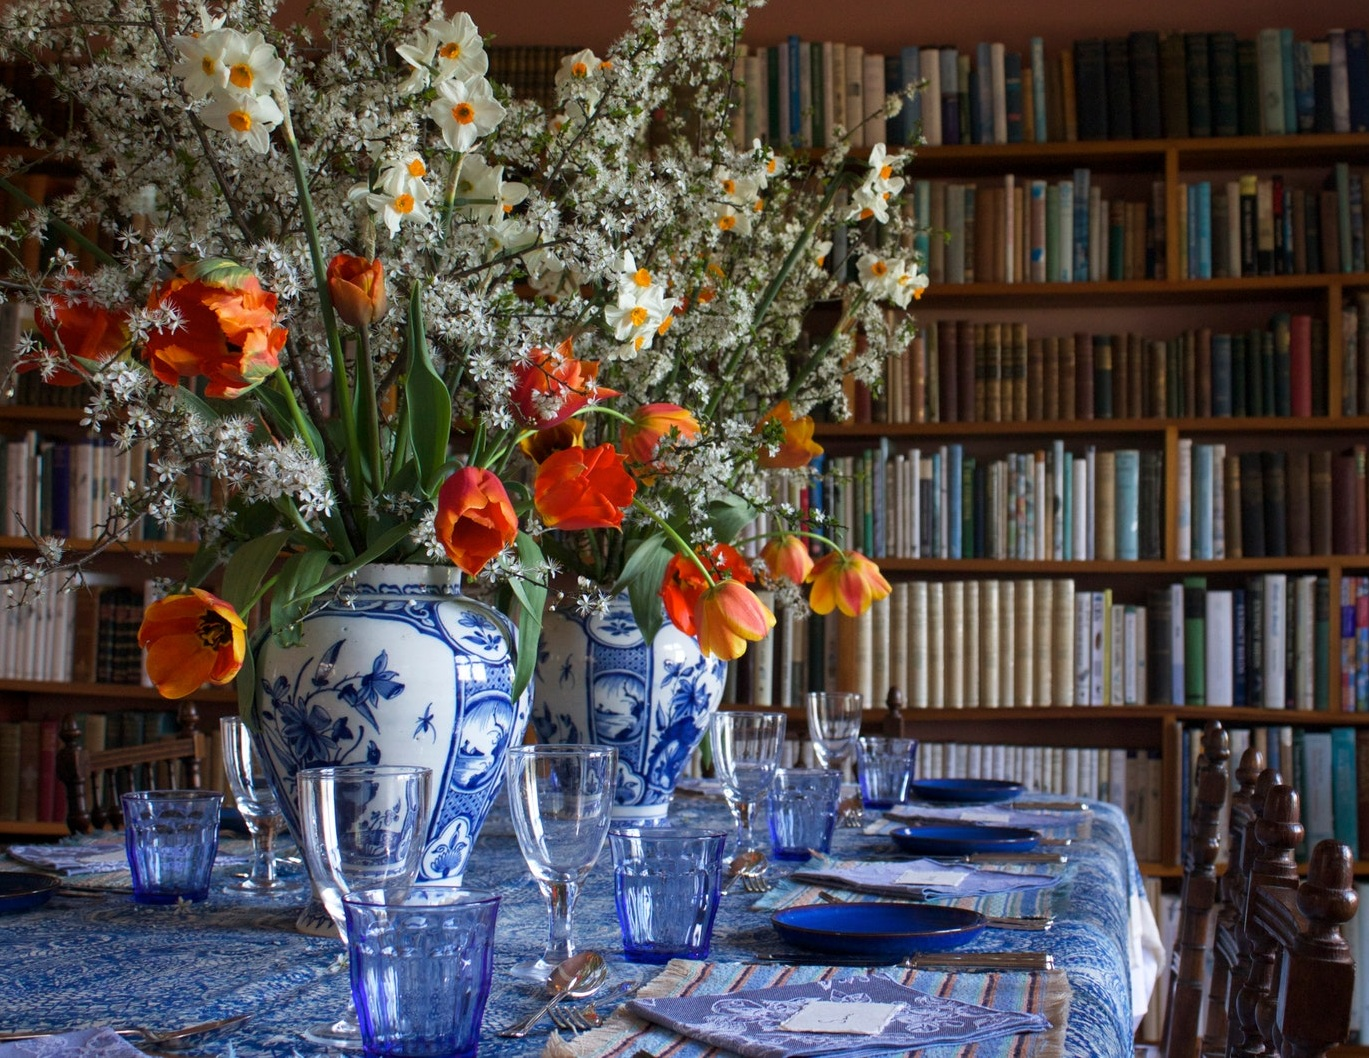 1. The bright orange flowers pair perfectly with the blue and white ginger jars, linens, and tableware.